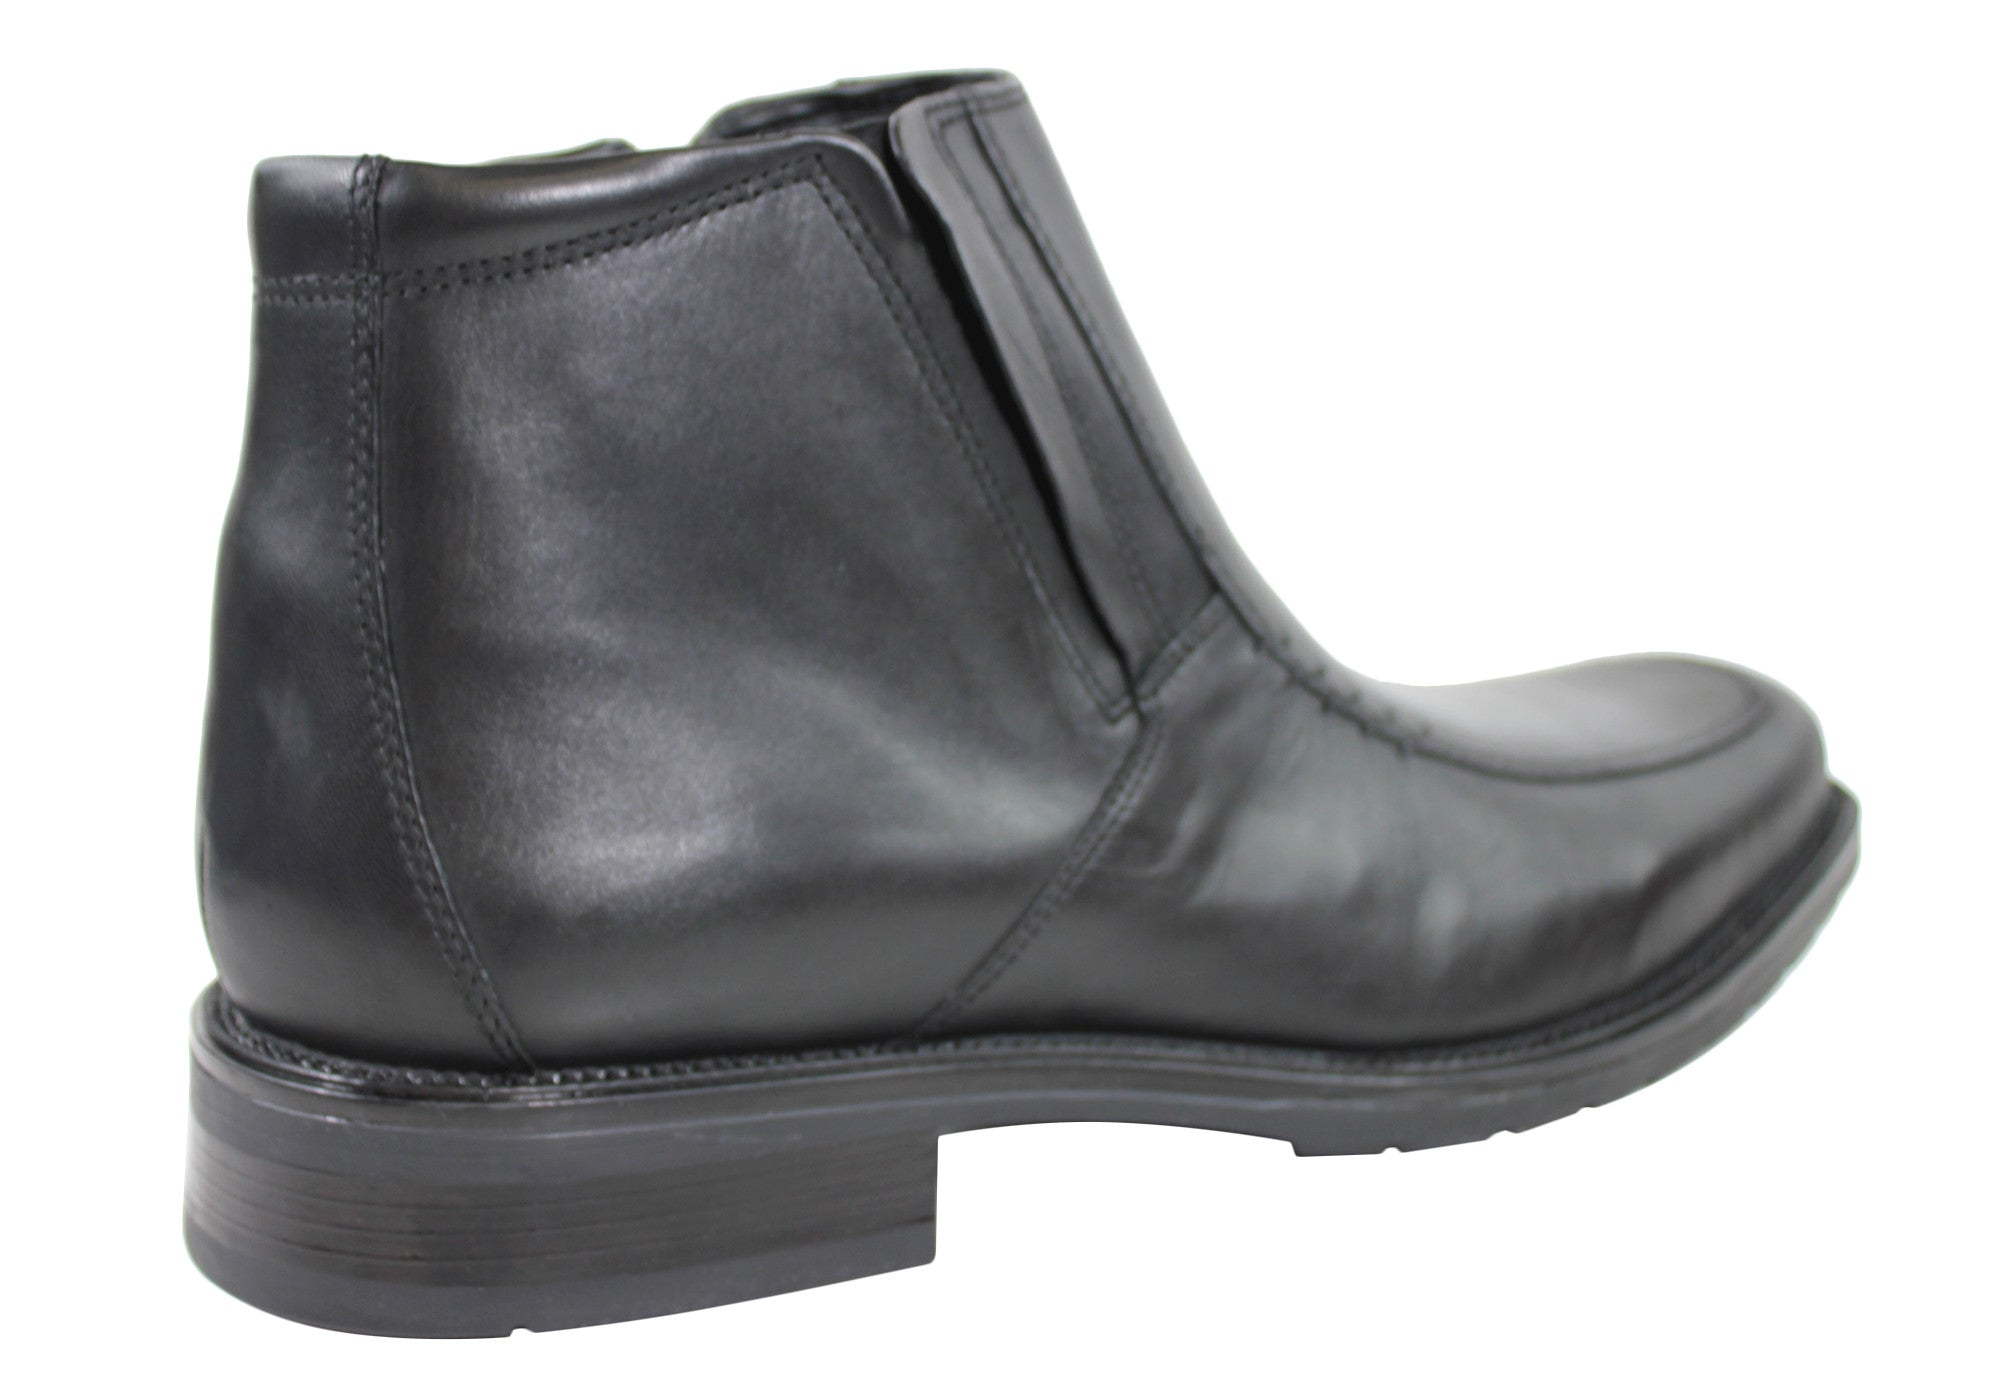 Julius Marlow Krest Mens Leather Zip Up Boots